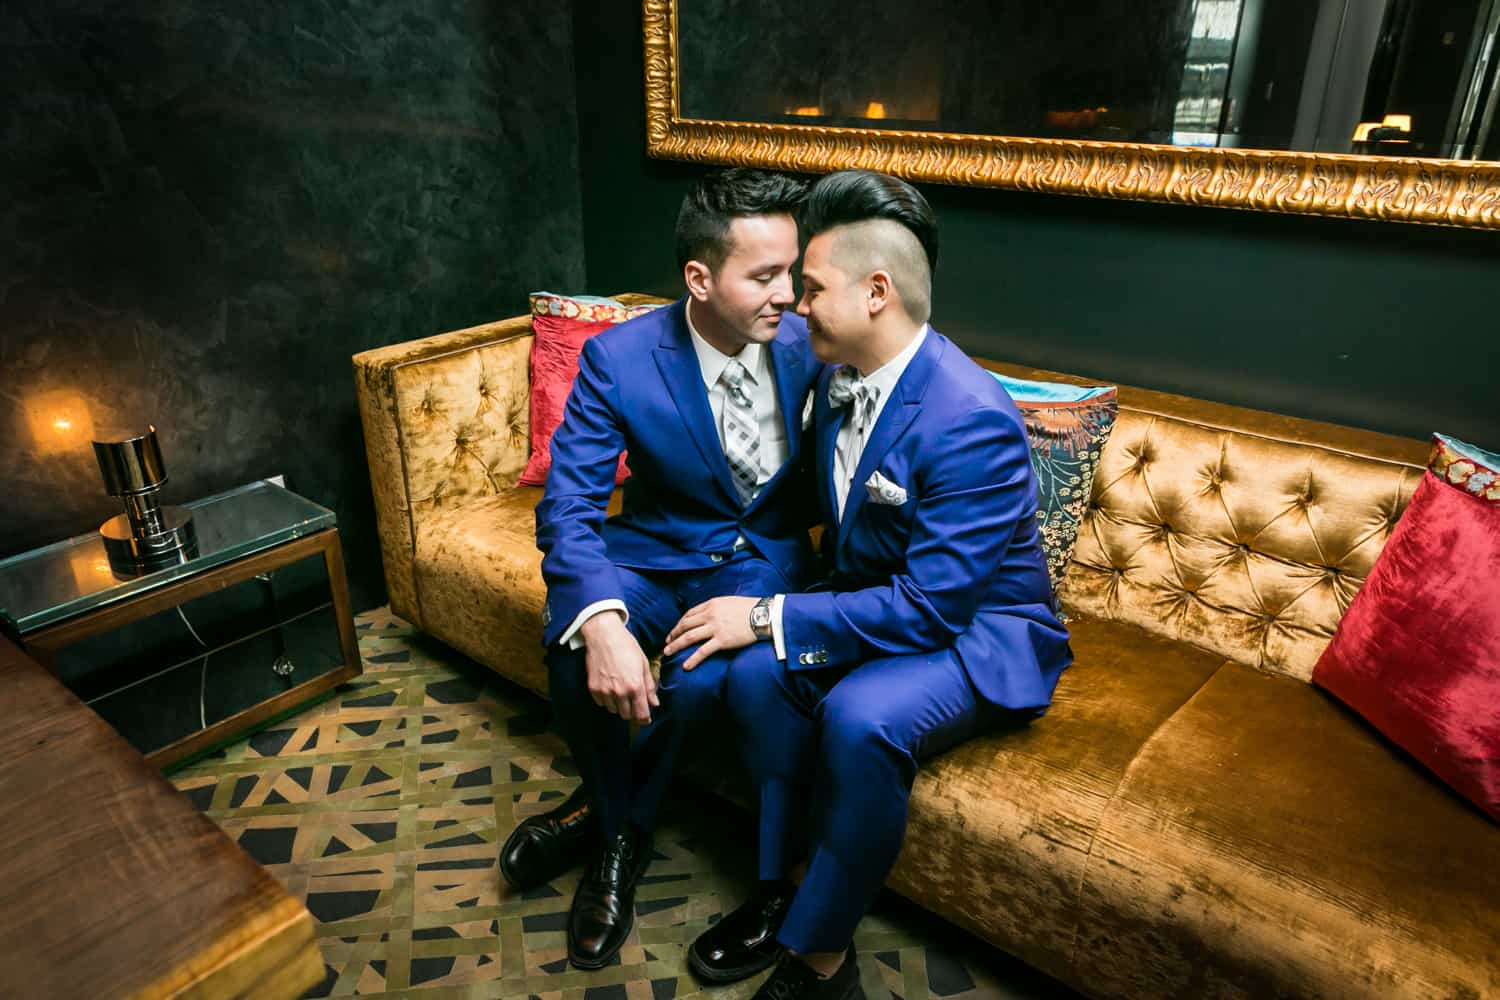 Two grooms cuddling on a couch